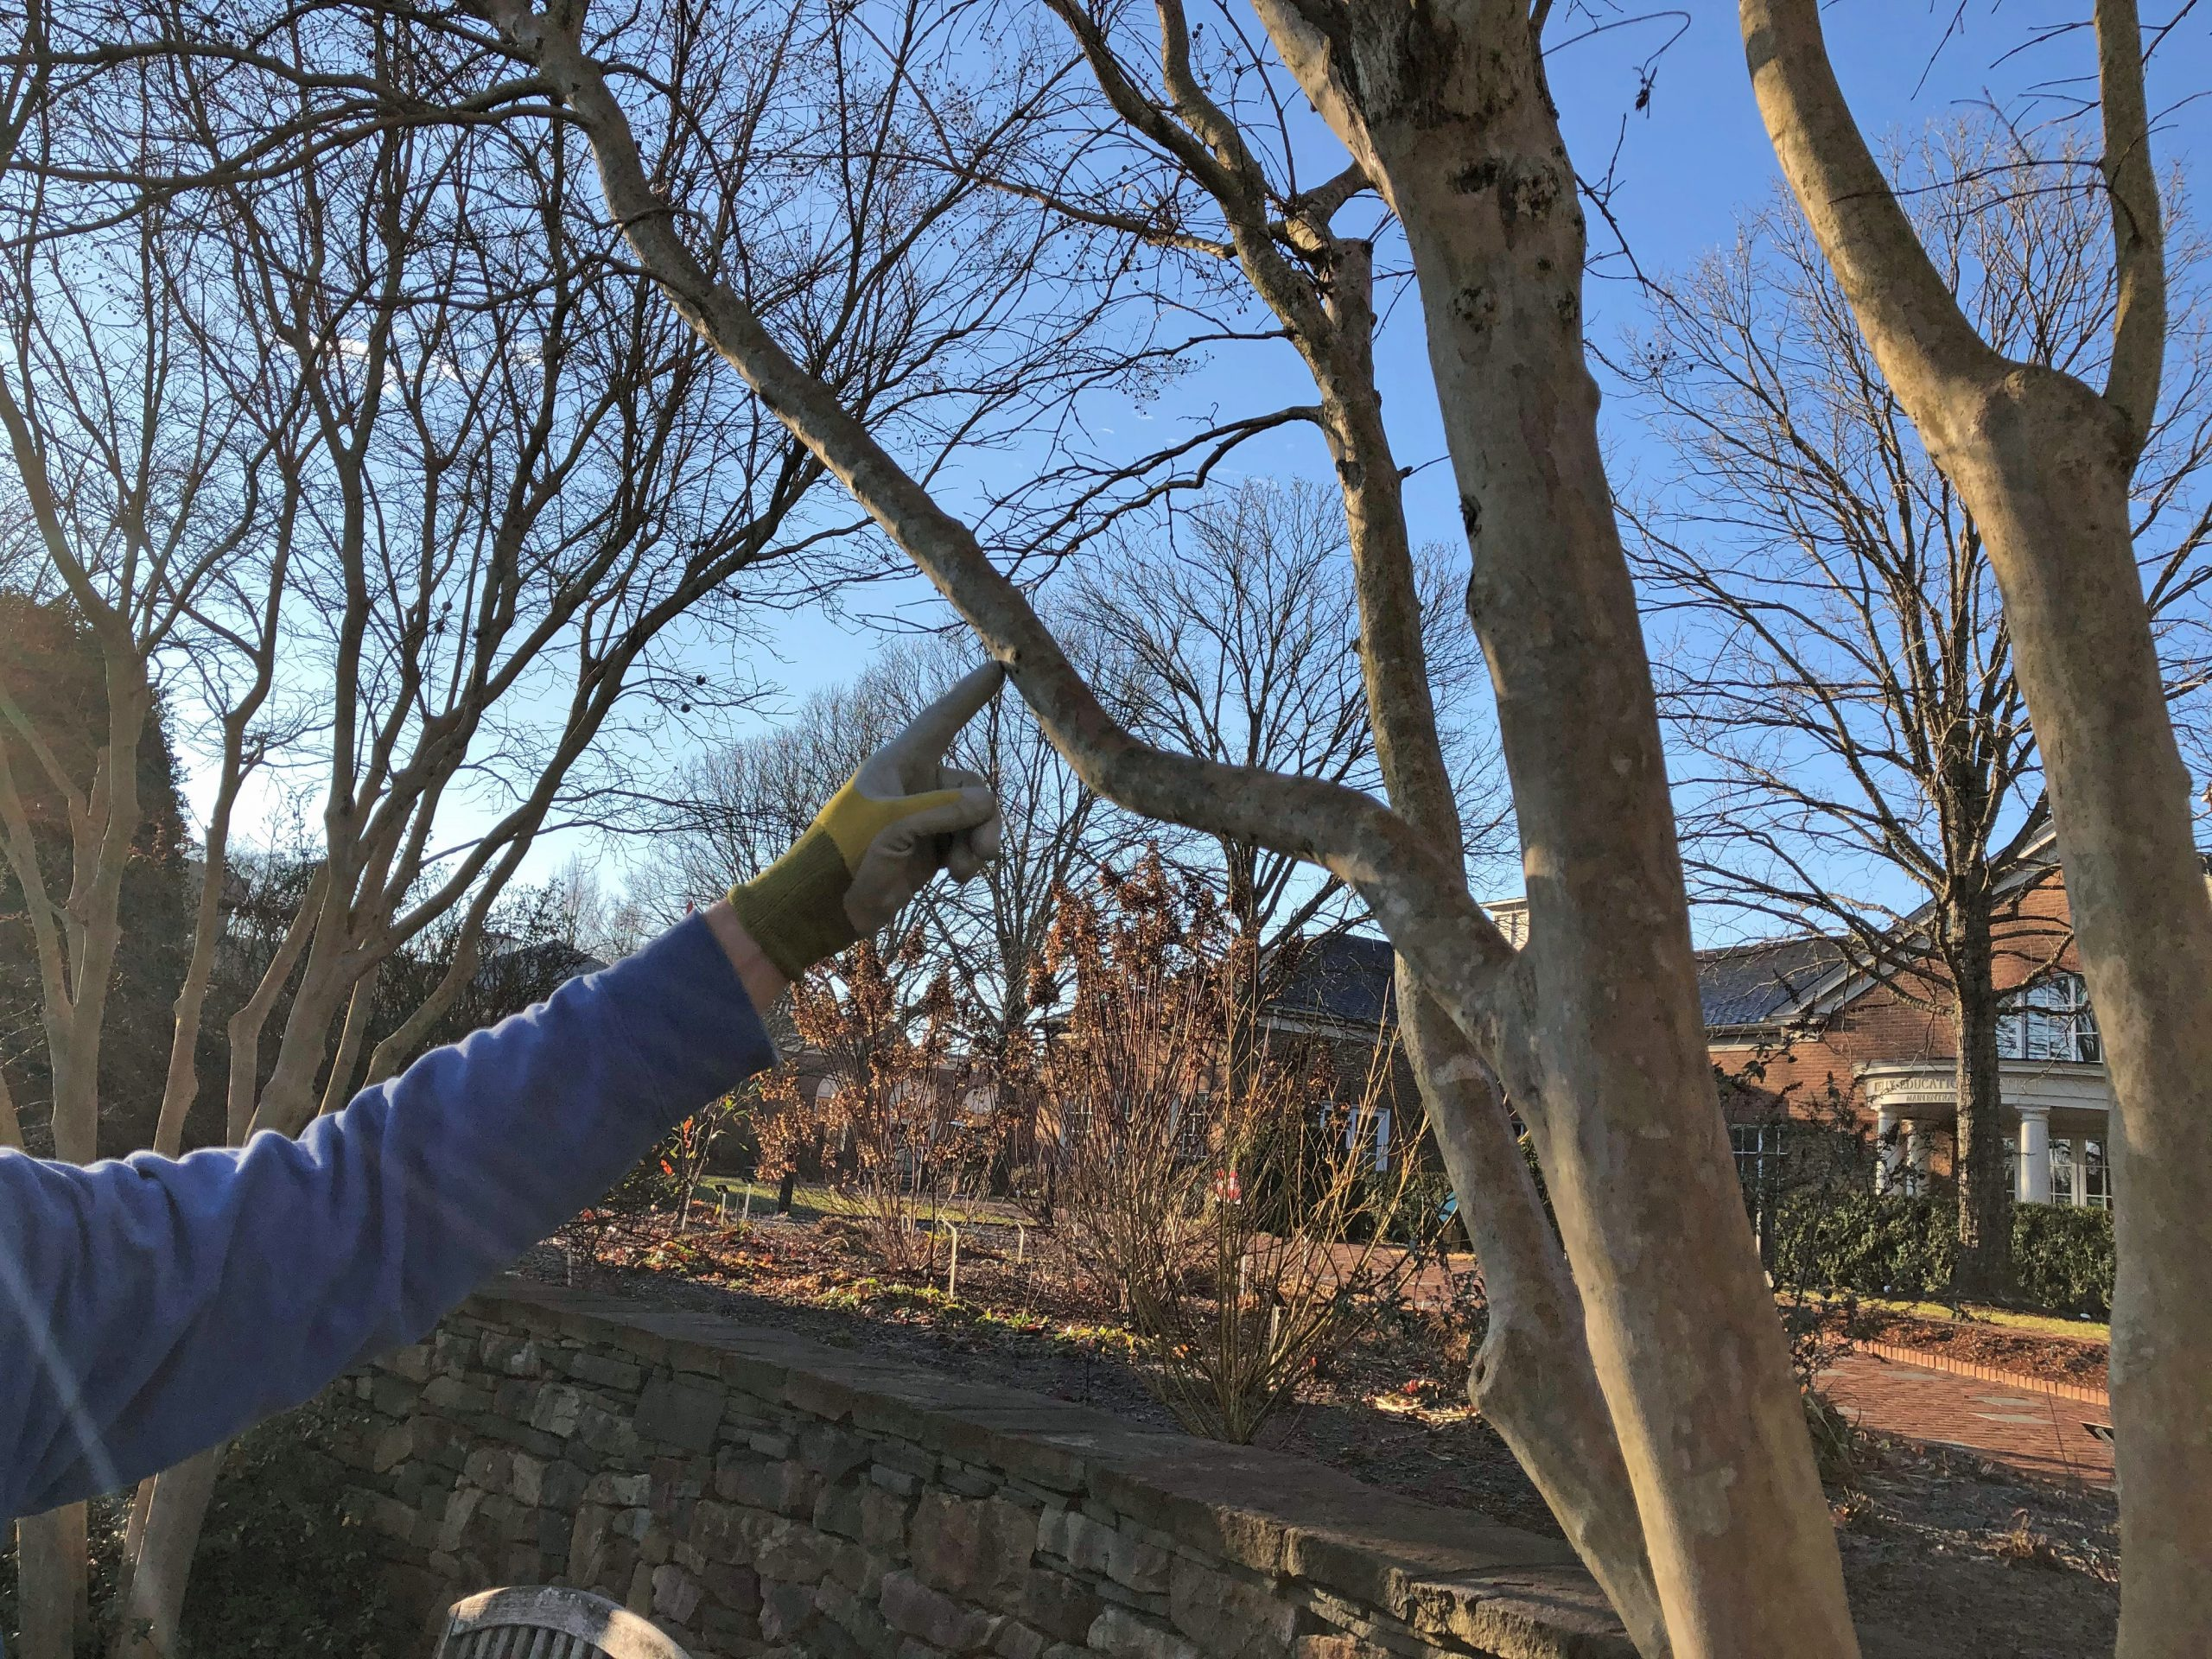 Showing where to make the first cut when pruning crape myrtles